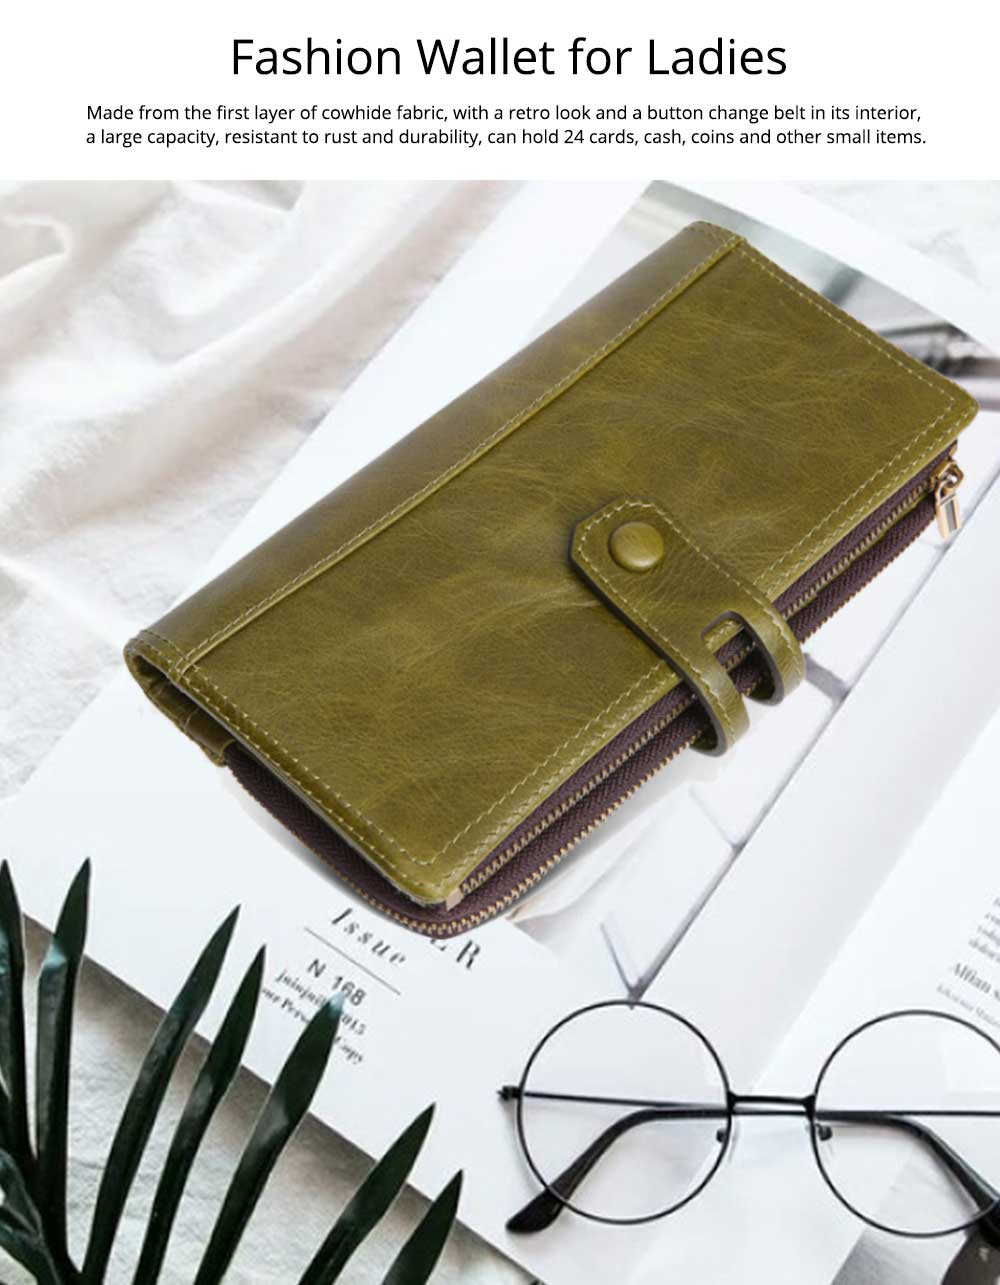 Vintage Double Zipper Long Wallet, Fashion Wallet for Ladies, High-quality First Layer of Cowhide Leather Clutch 4